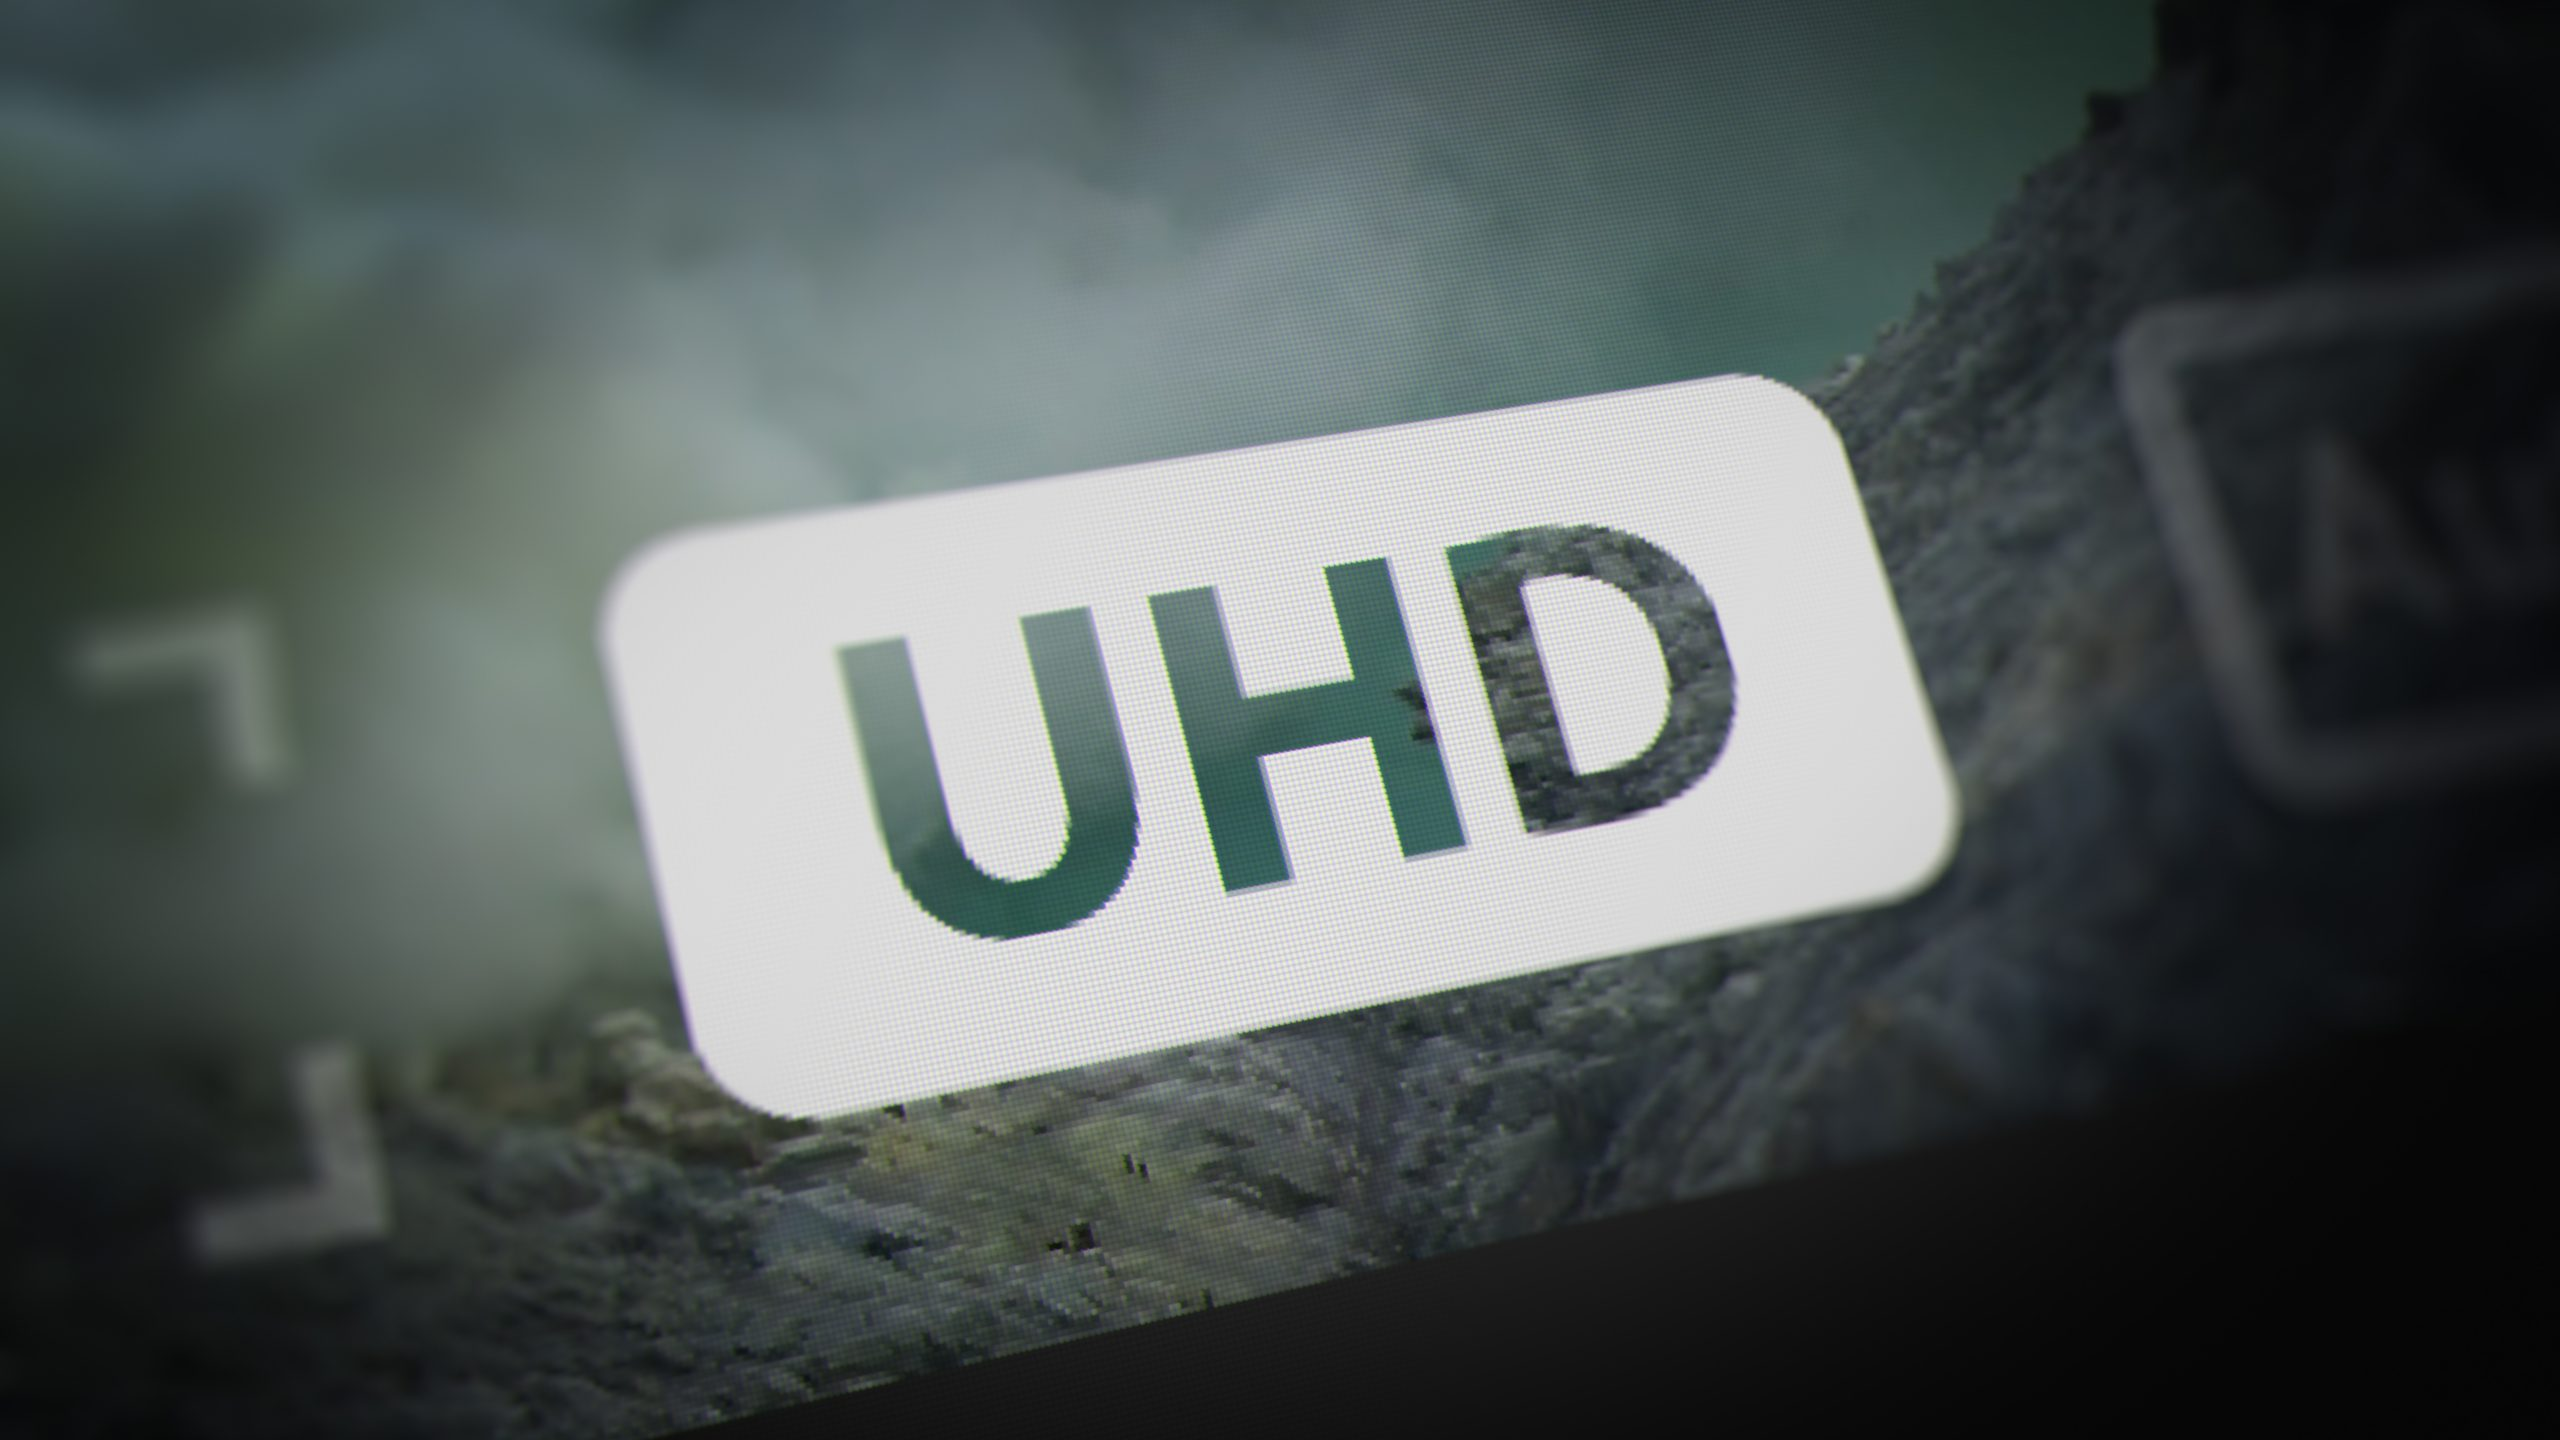 UHD (Ultra-high-definition) Label of Video Player Interface on Monitor Screen